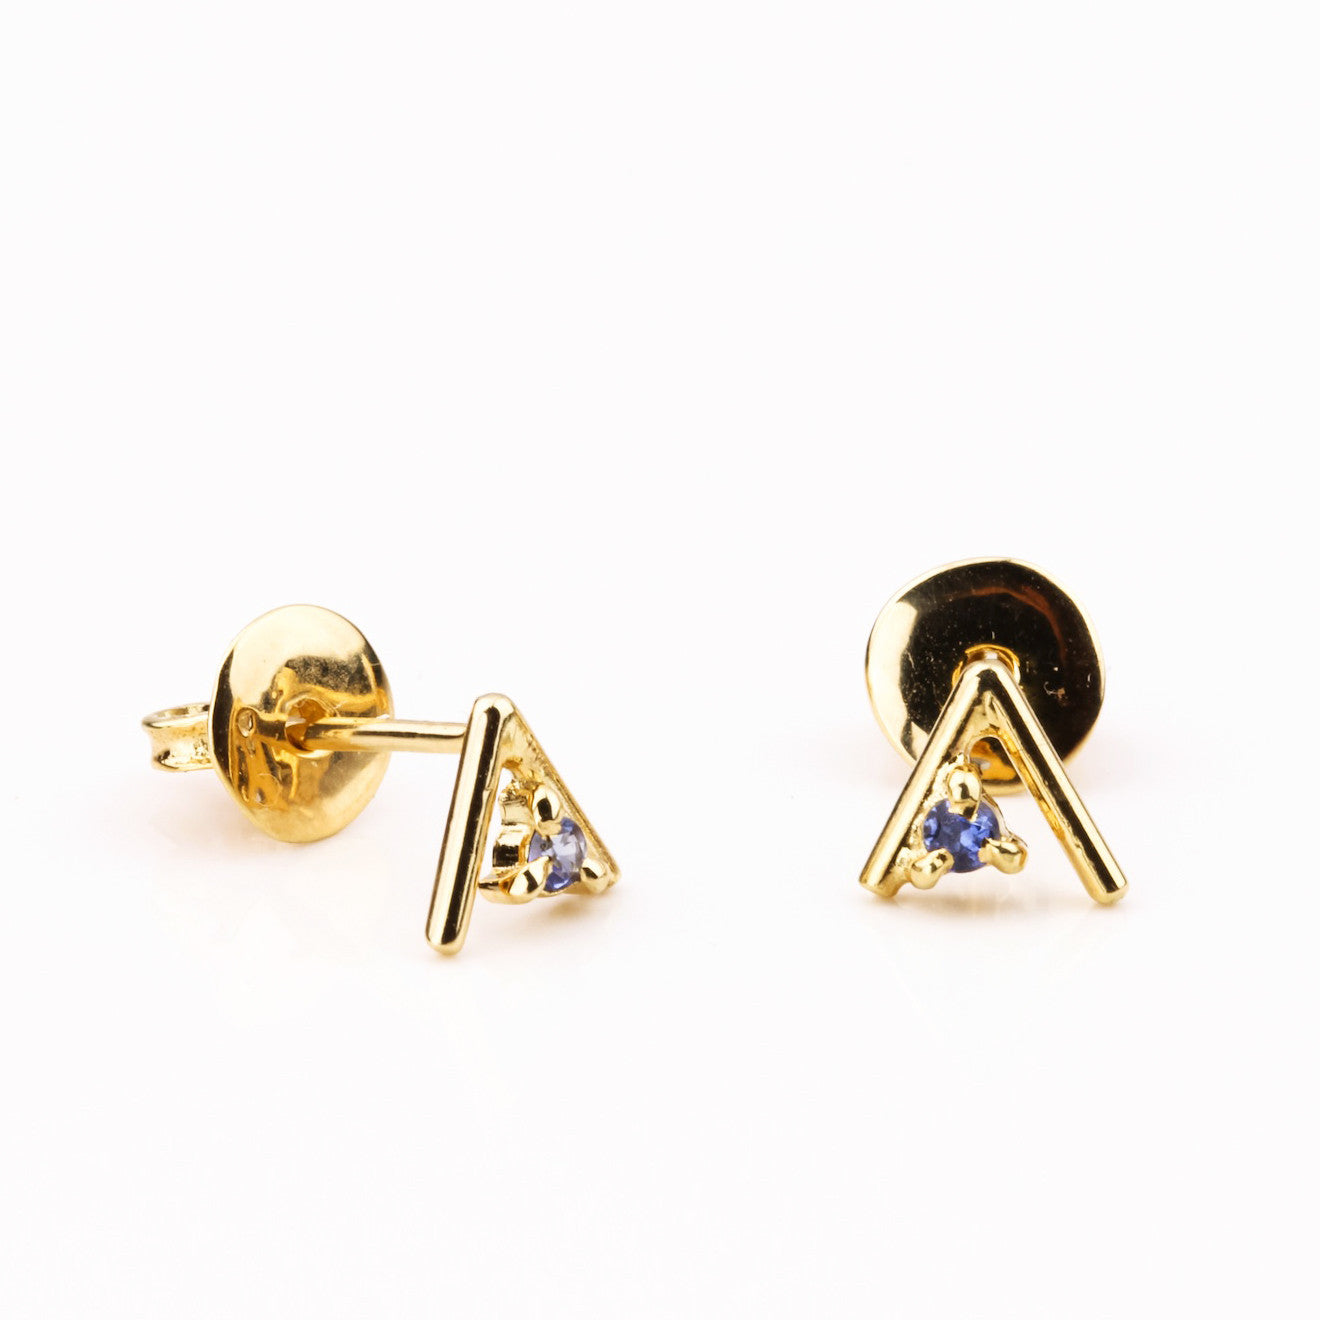 Tiny Temple Gem Earrings - Yellow Gold with Blue Tourmaline